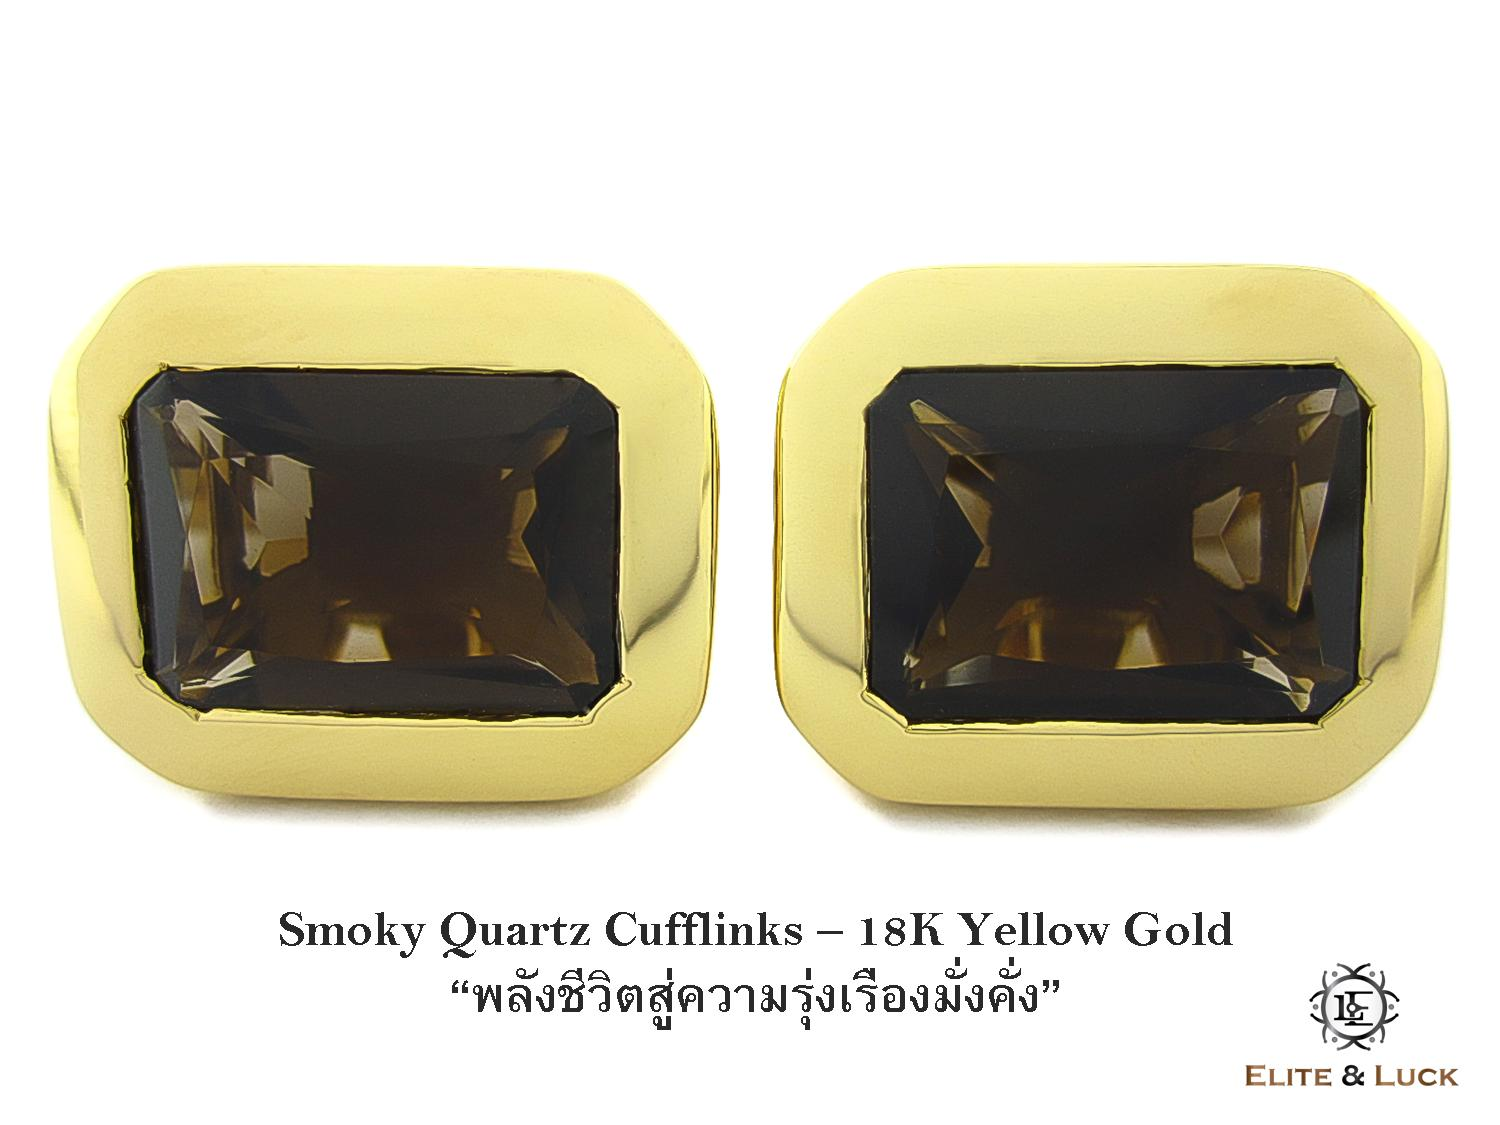 Smoky Quartz Sterling Silver Cufflinks สี 18K Yellow Gold รุ่น Classic